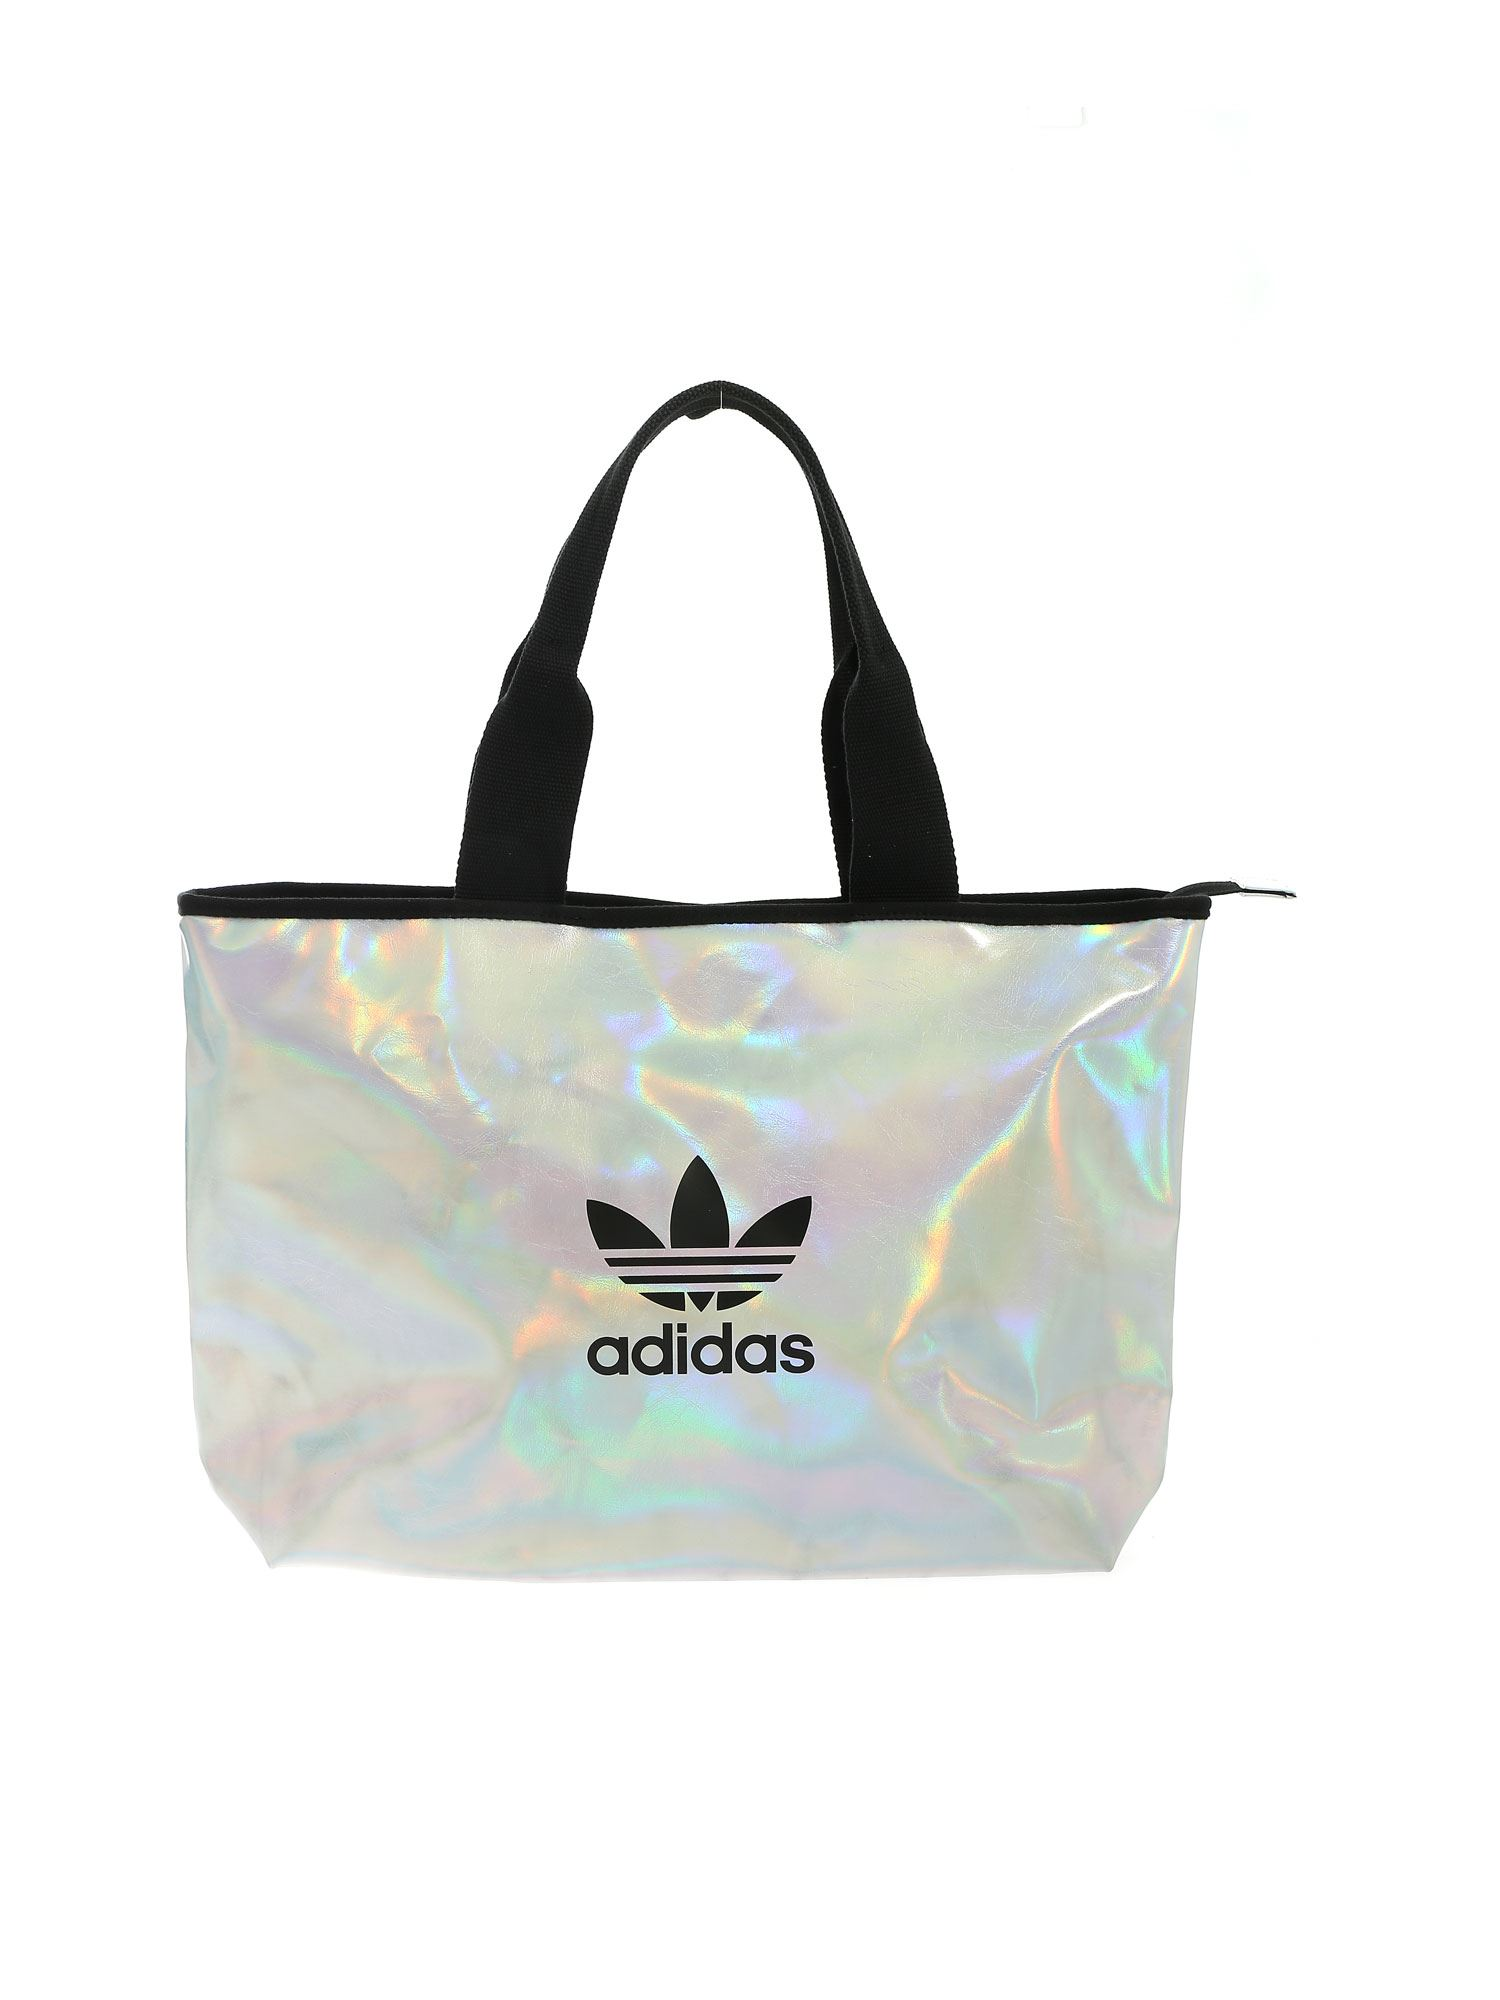 Adidas Originals ADIDAS ORIGINALS SHOPPER BAG IN SILVER